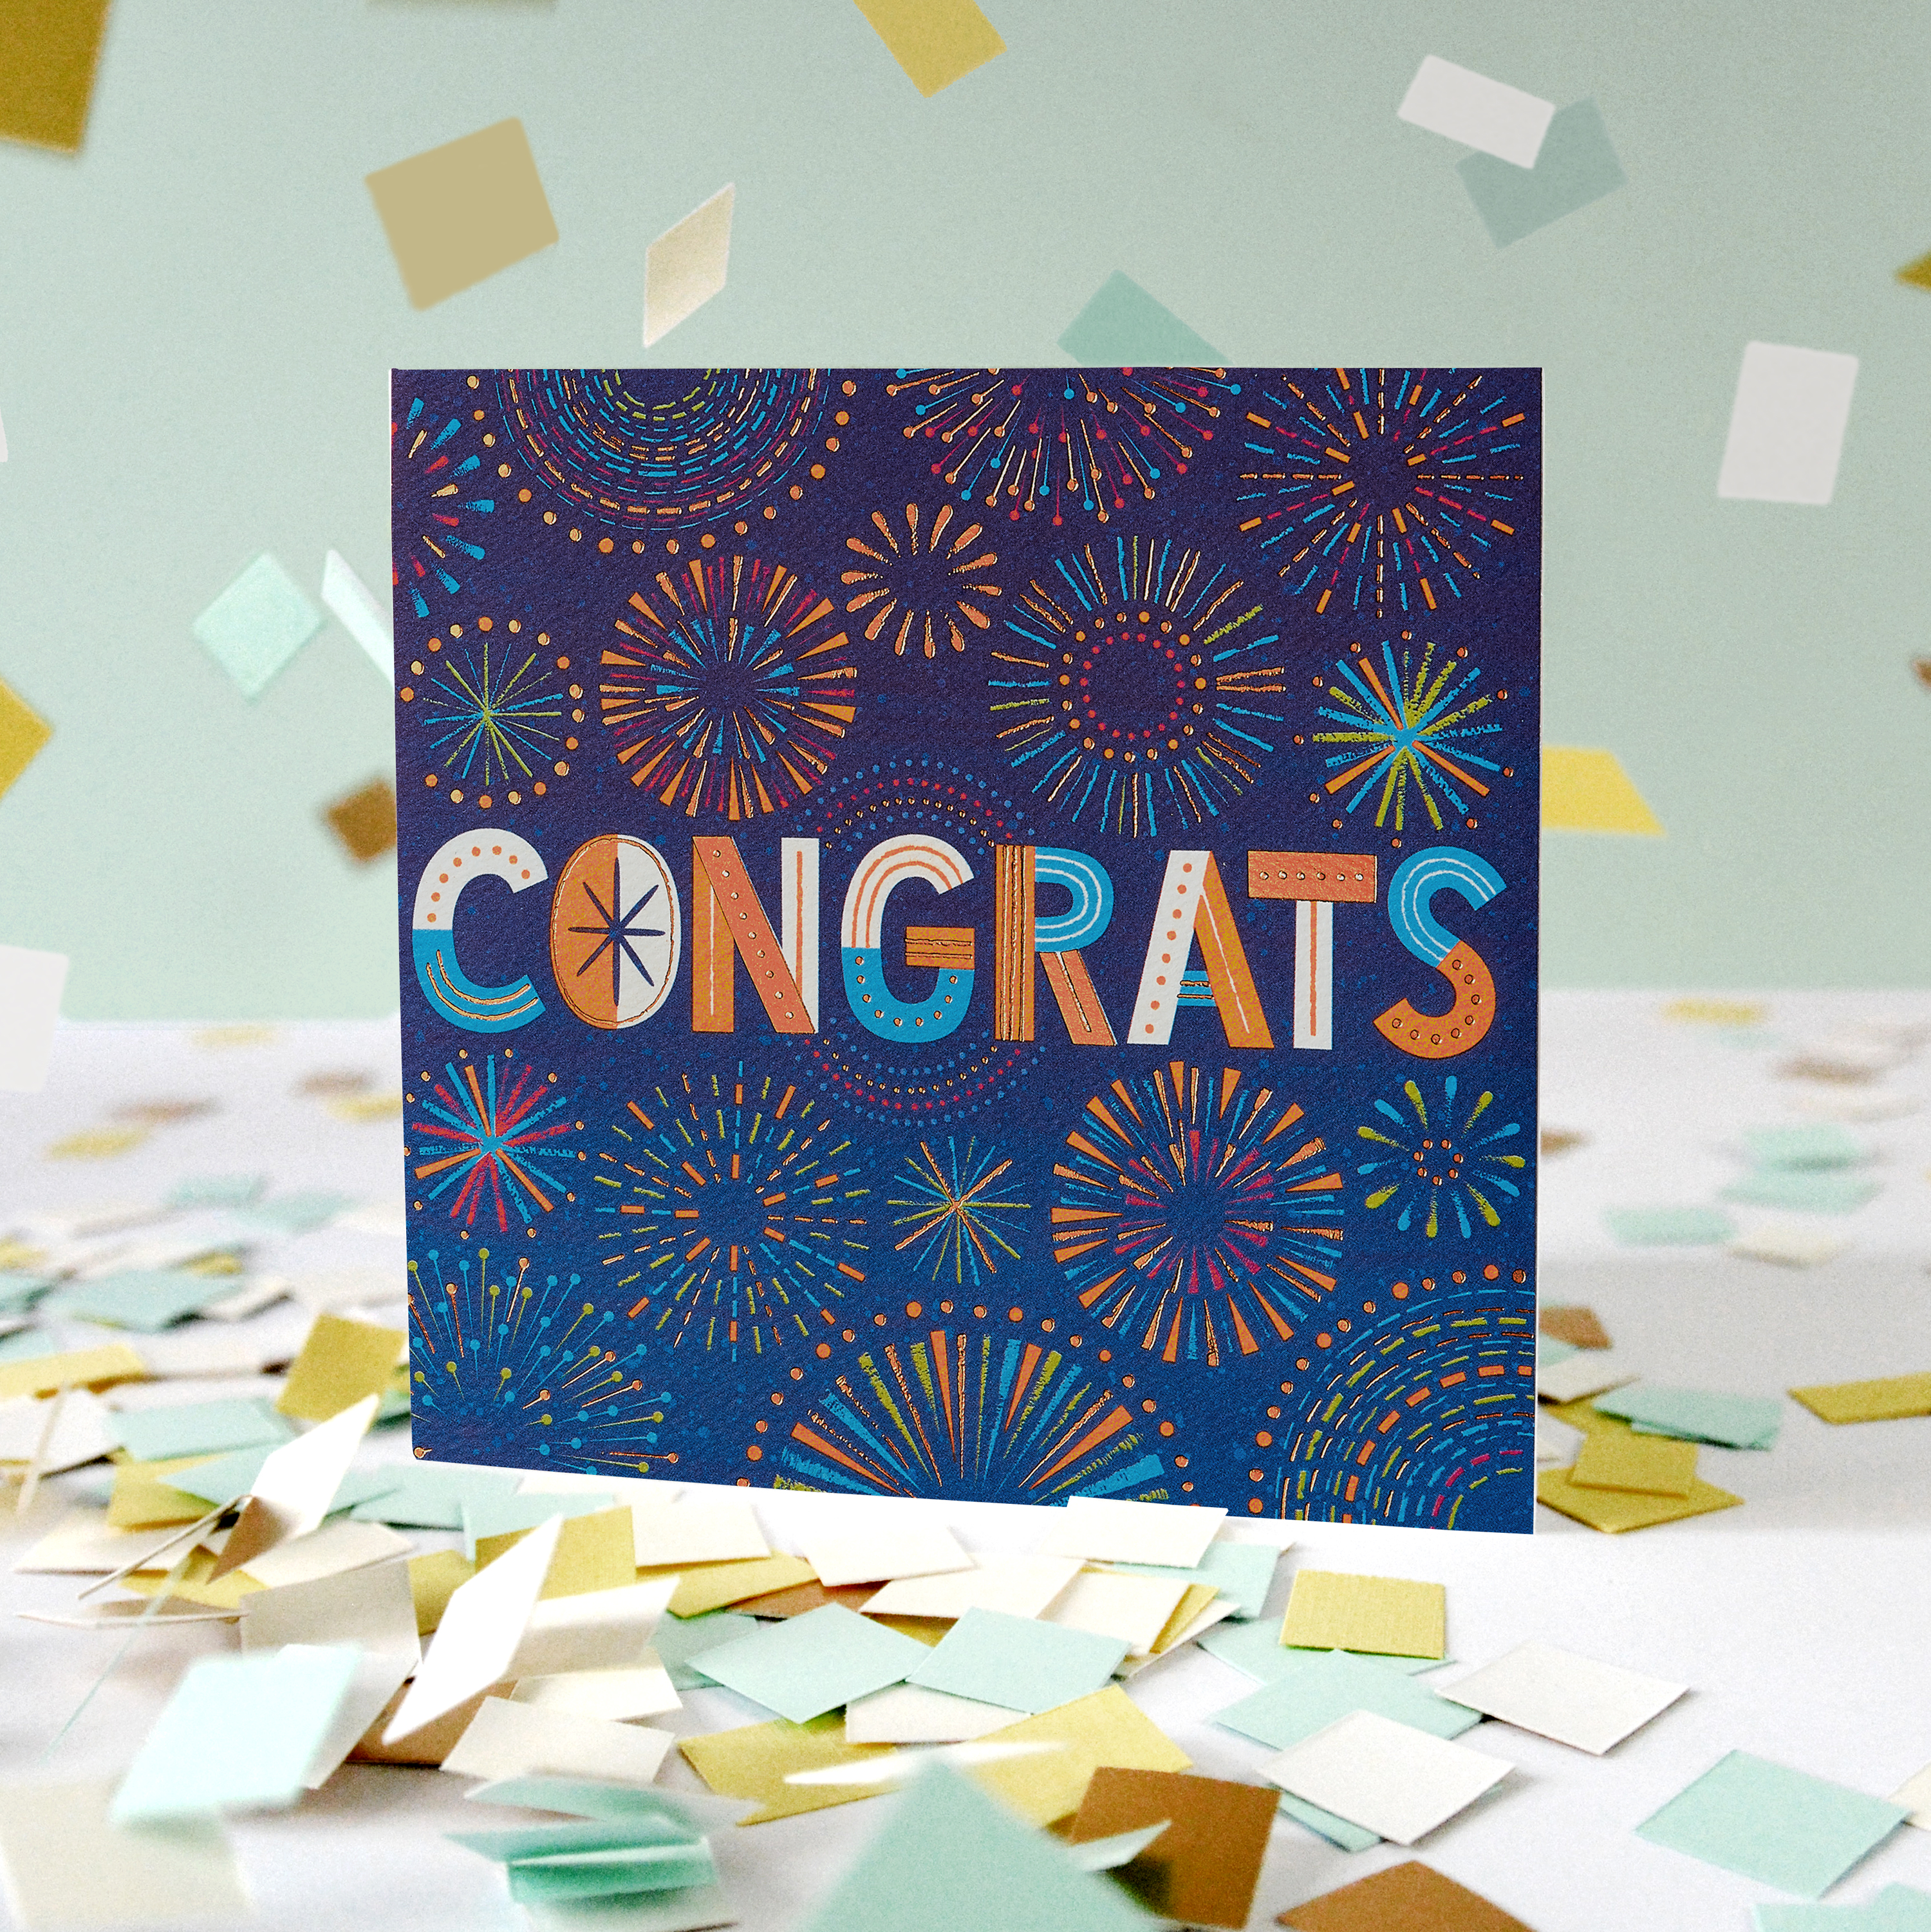 Congrats Greeting Card - Congratulations, Graduation, New Job, Promotion, Encouragement image